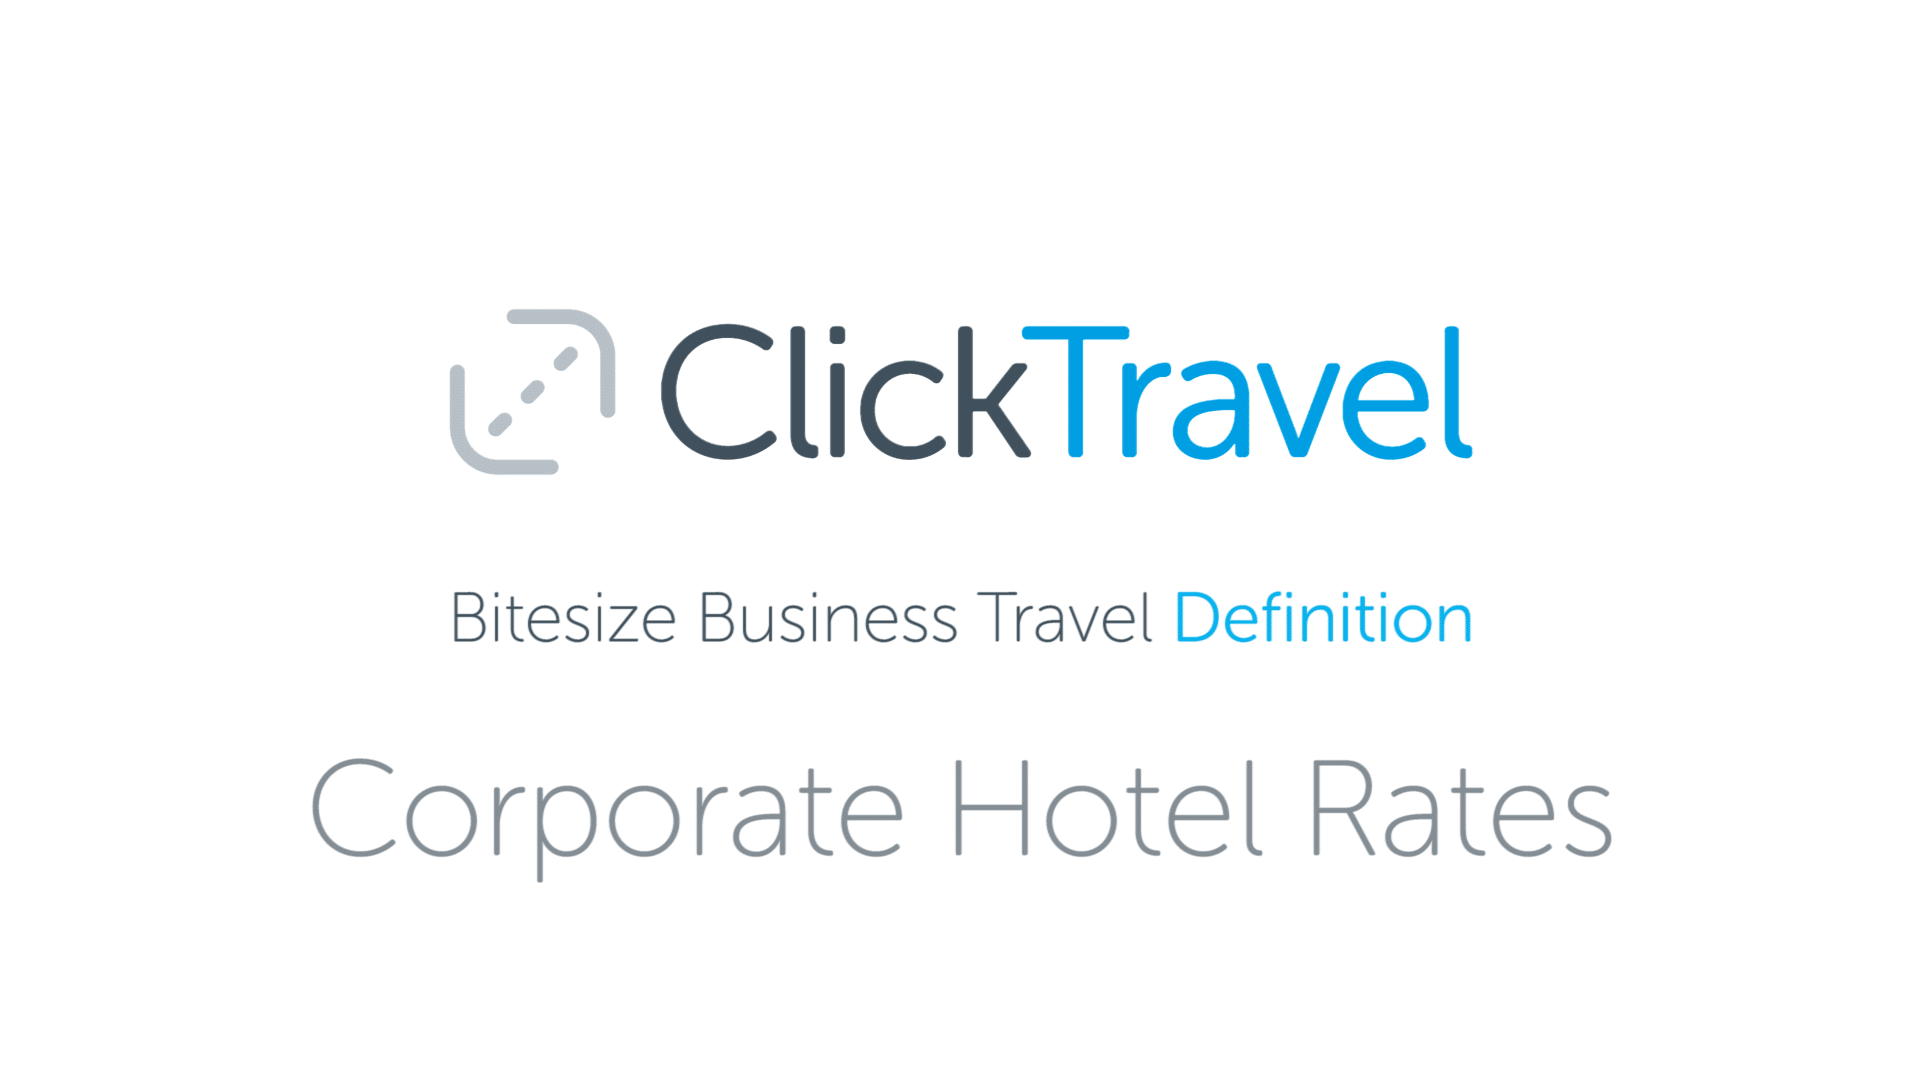 [VIDEO] Bitesize Business Travel Definition: Corporate hotel rates